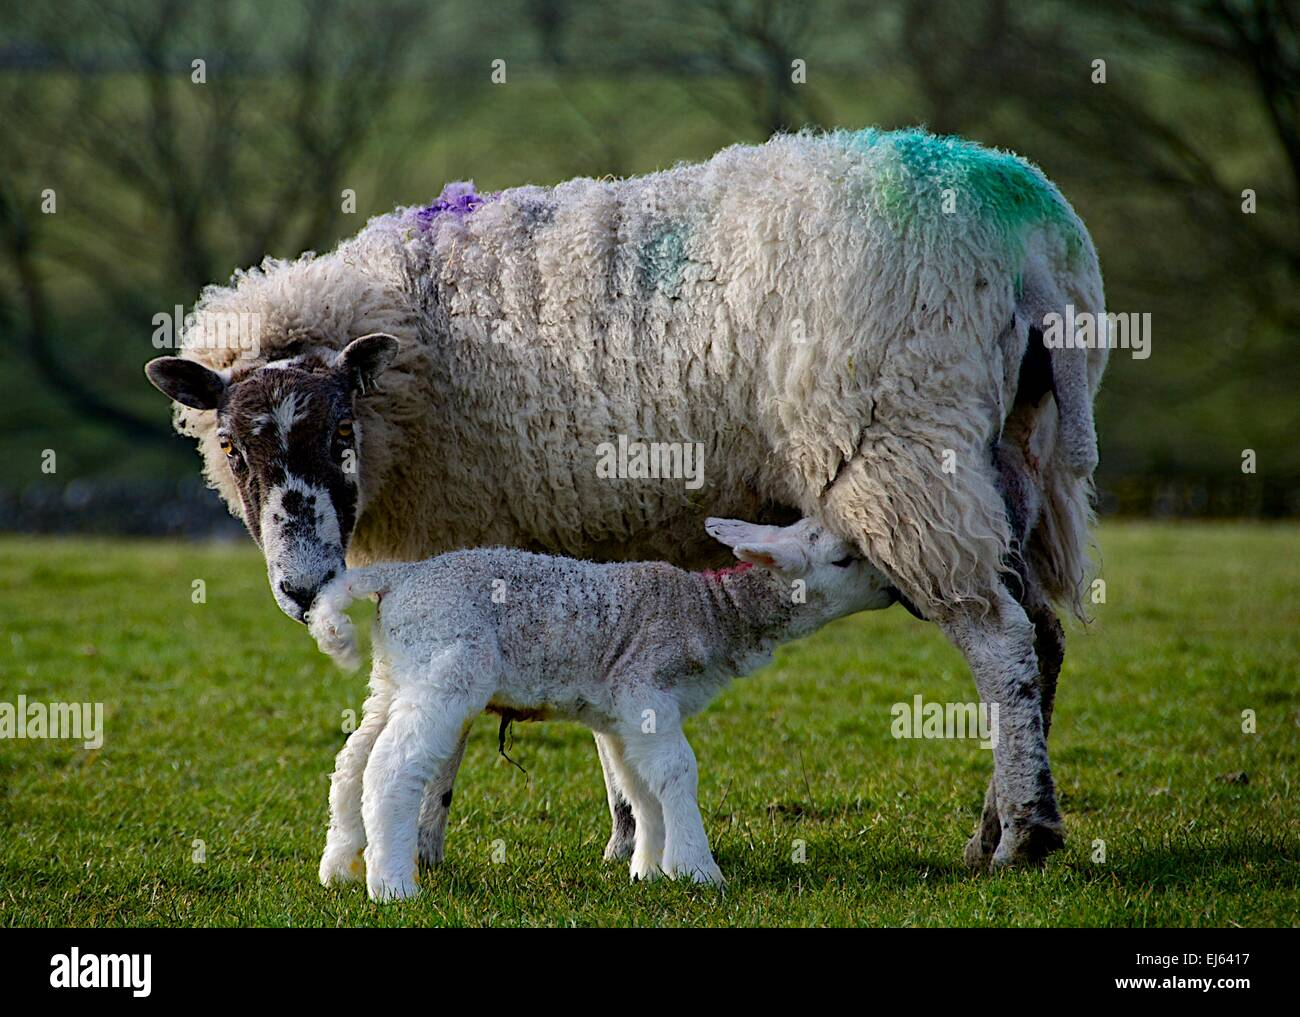 A ewe feeds her newborn lamb after giving birth in spring in North Yorkshire, Yorkshire Dales. Stock Photo